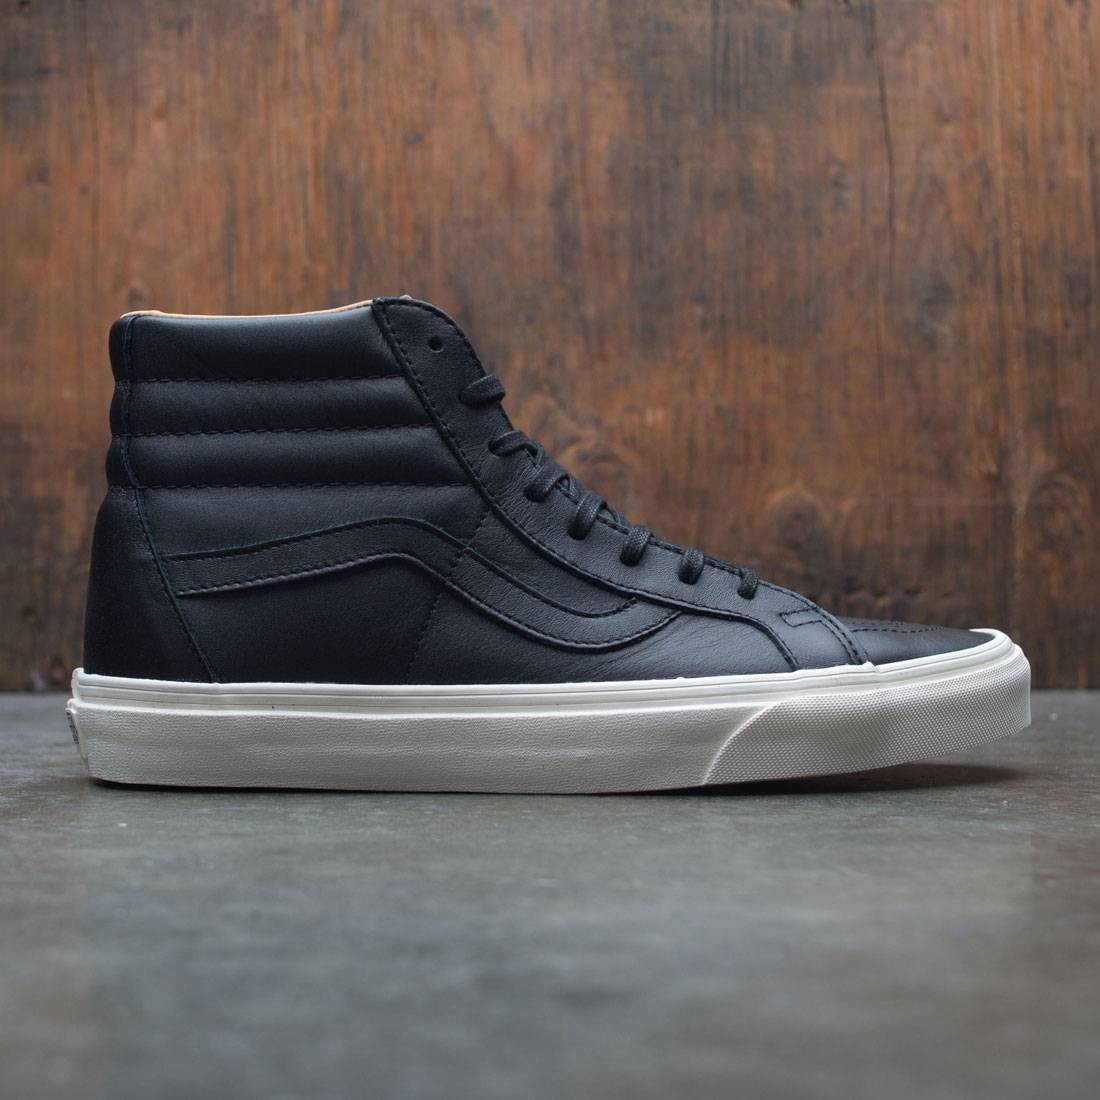 54fbdef155a0a9 Vans Men SK8-Hi Reissue - Lux Leather black porcini